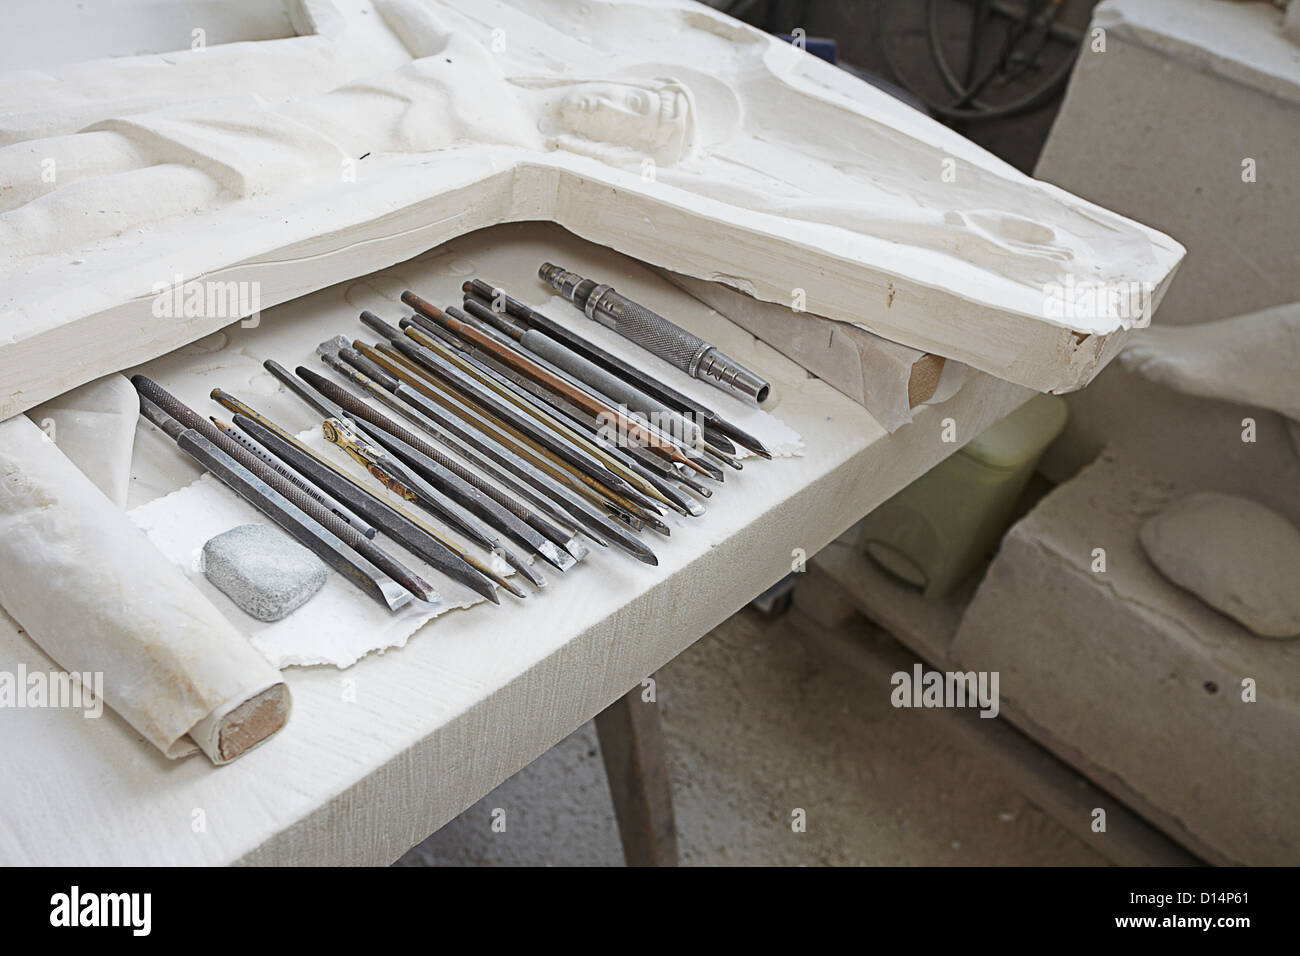 Chisels by stone relief carving - Stock Image